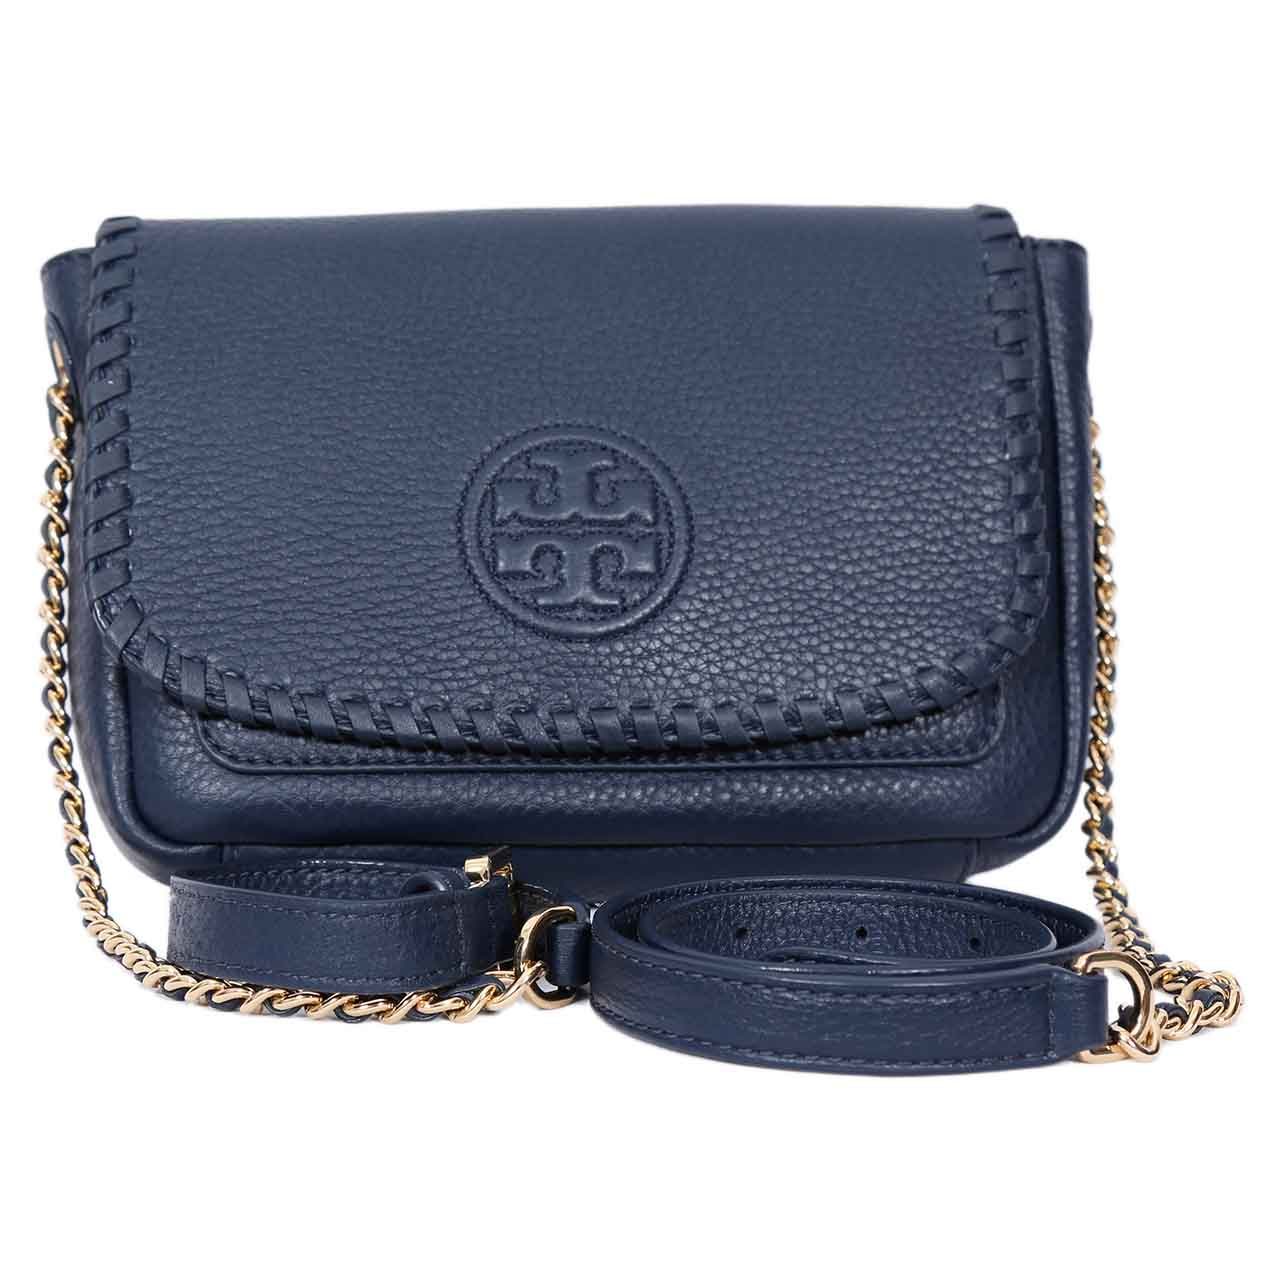 TORY BURCH MARION MINI SHOULDER BAG